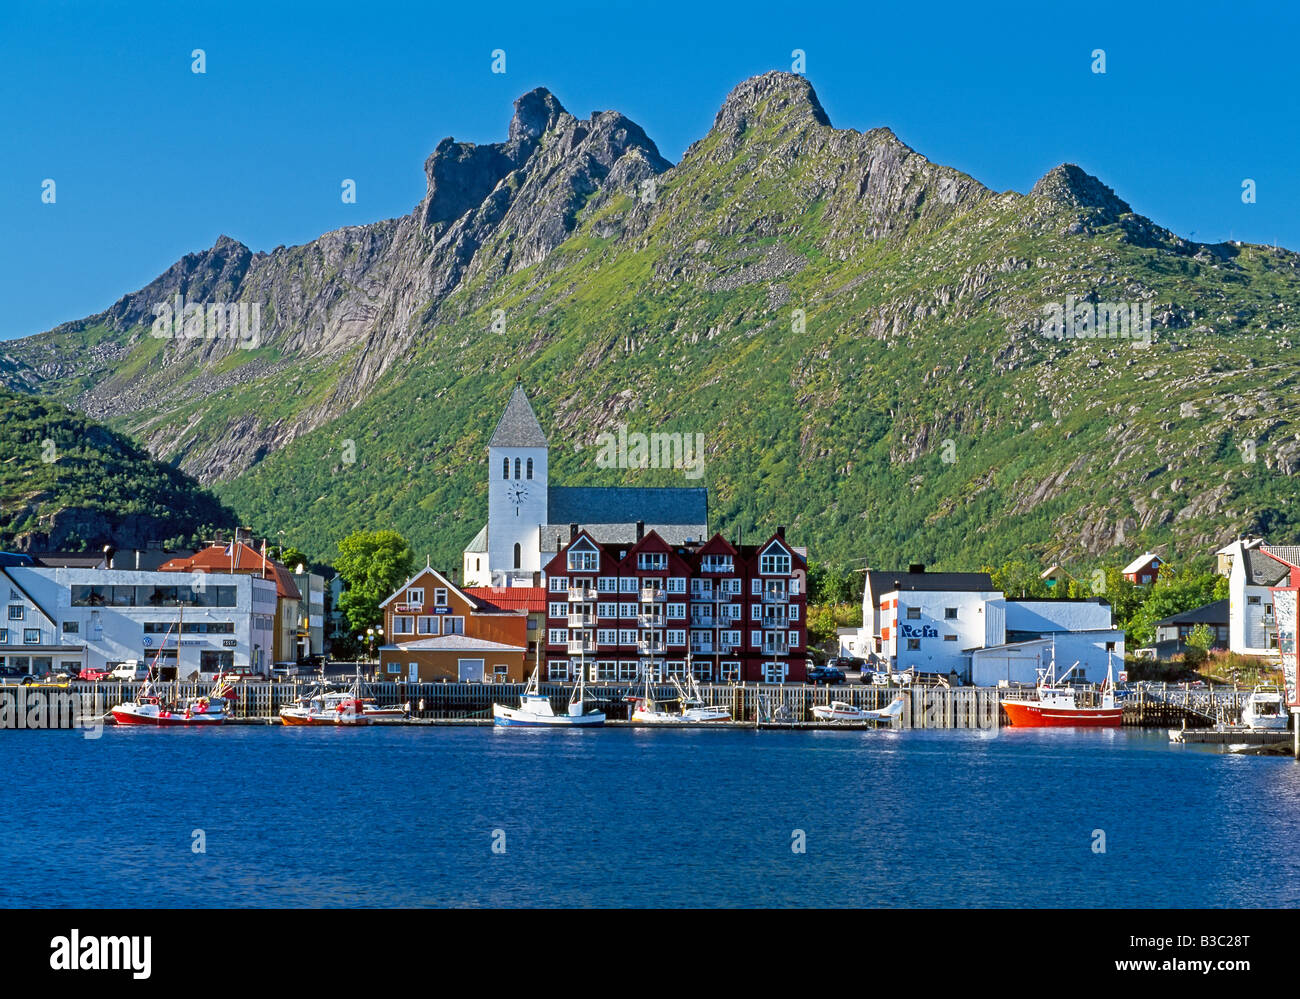 Norway, Nordland, Lofoten Islands, Town of SvolvaerStock Photo